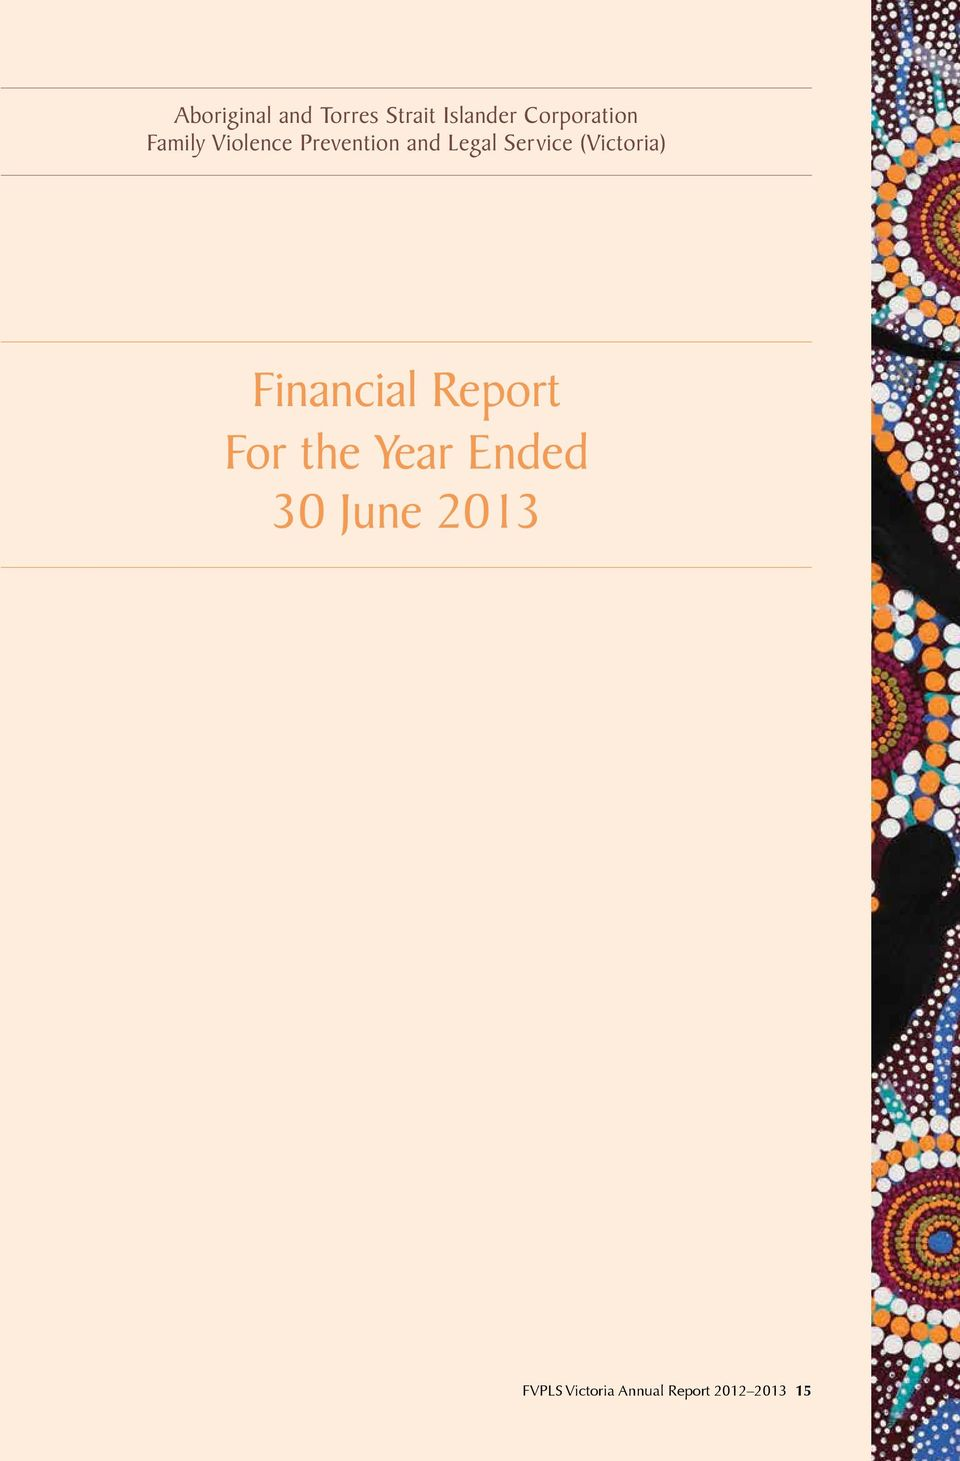 Service (Victoria) Financial Report For the Year